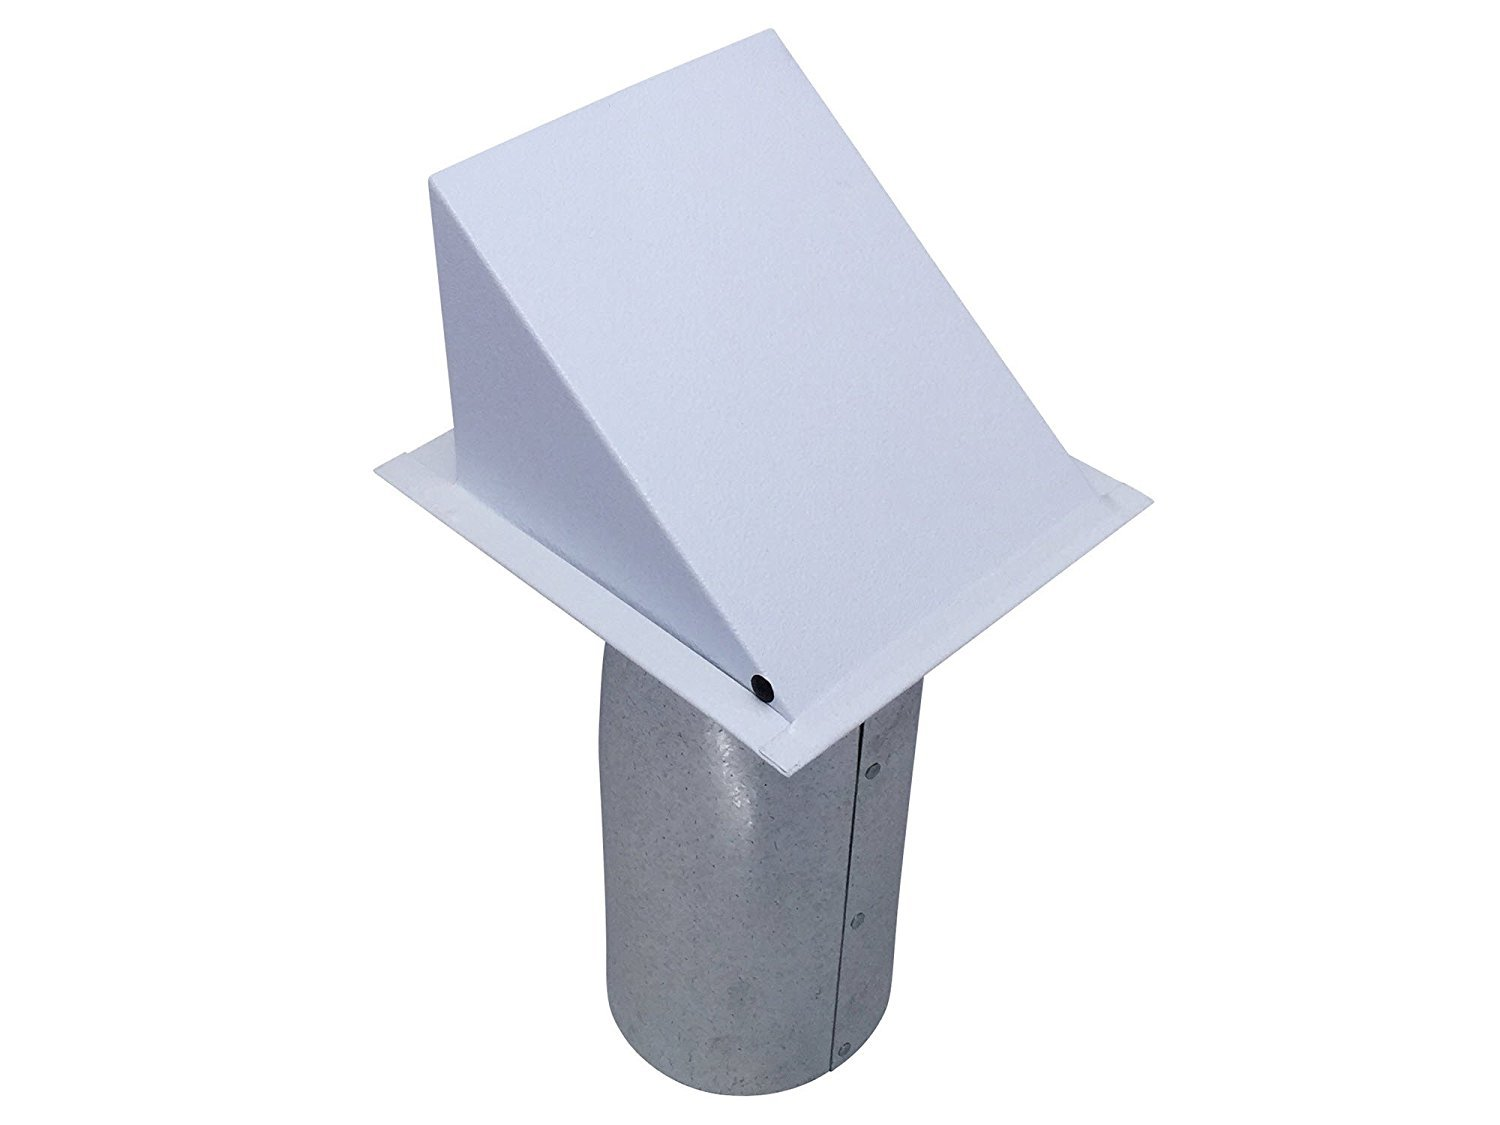 4 Inch Wall Vent Painted White Screen Only (4 Inch diameter) - Vent Works by Vent Works (Image #3)